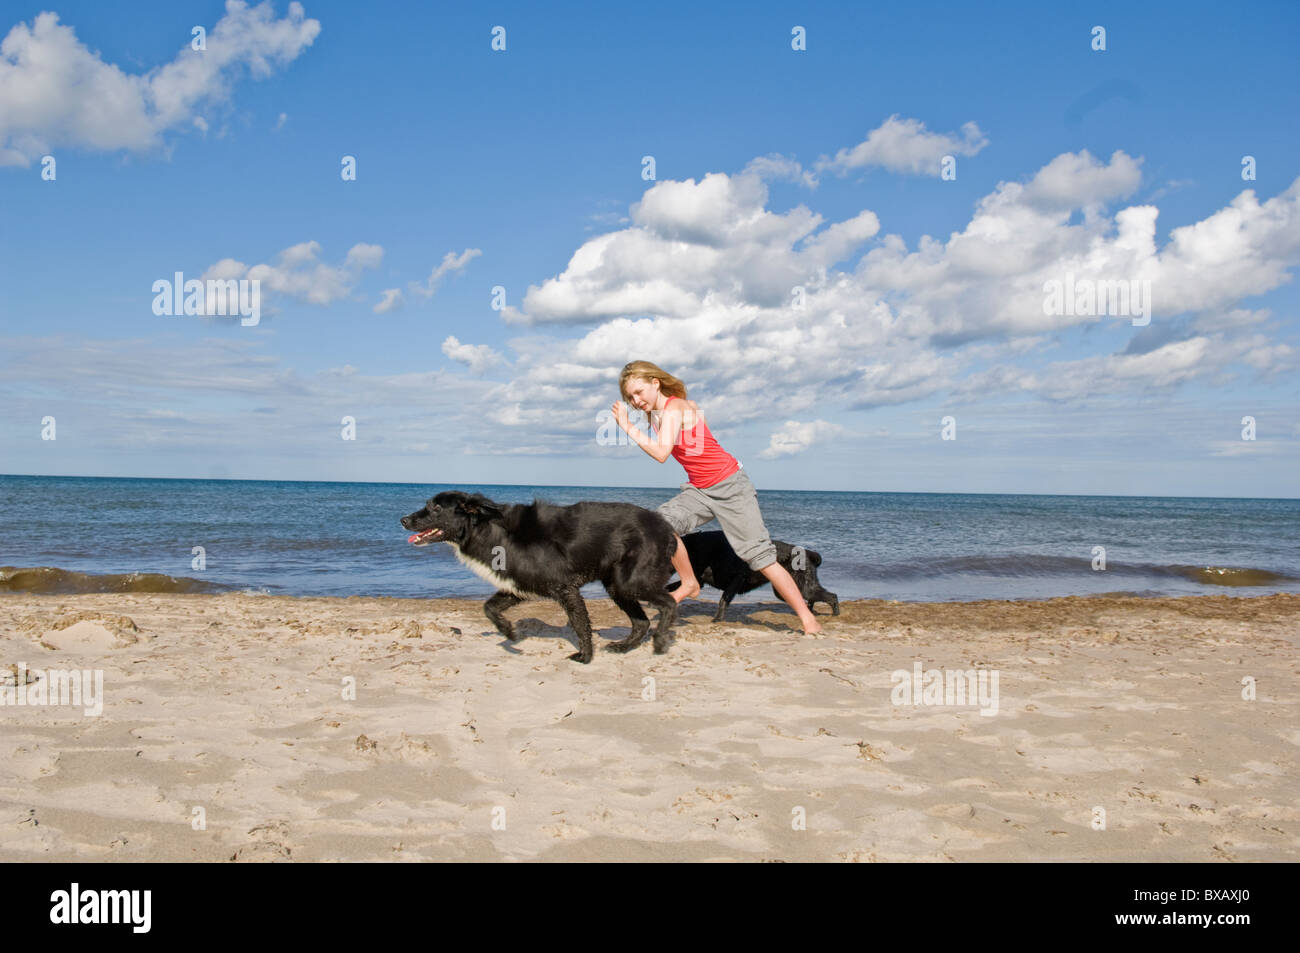 Girl with dogs running on beach Stock Photo